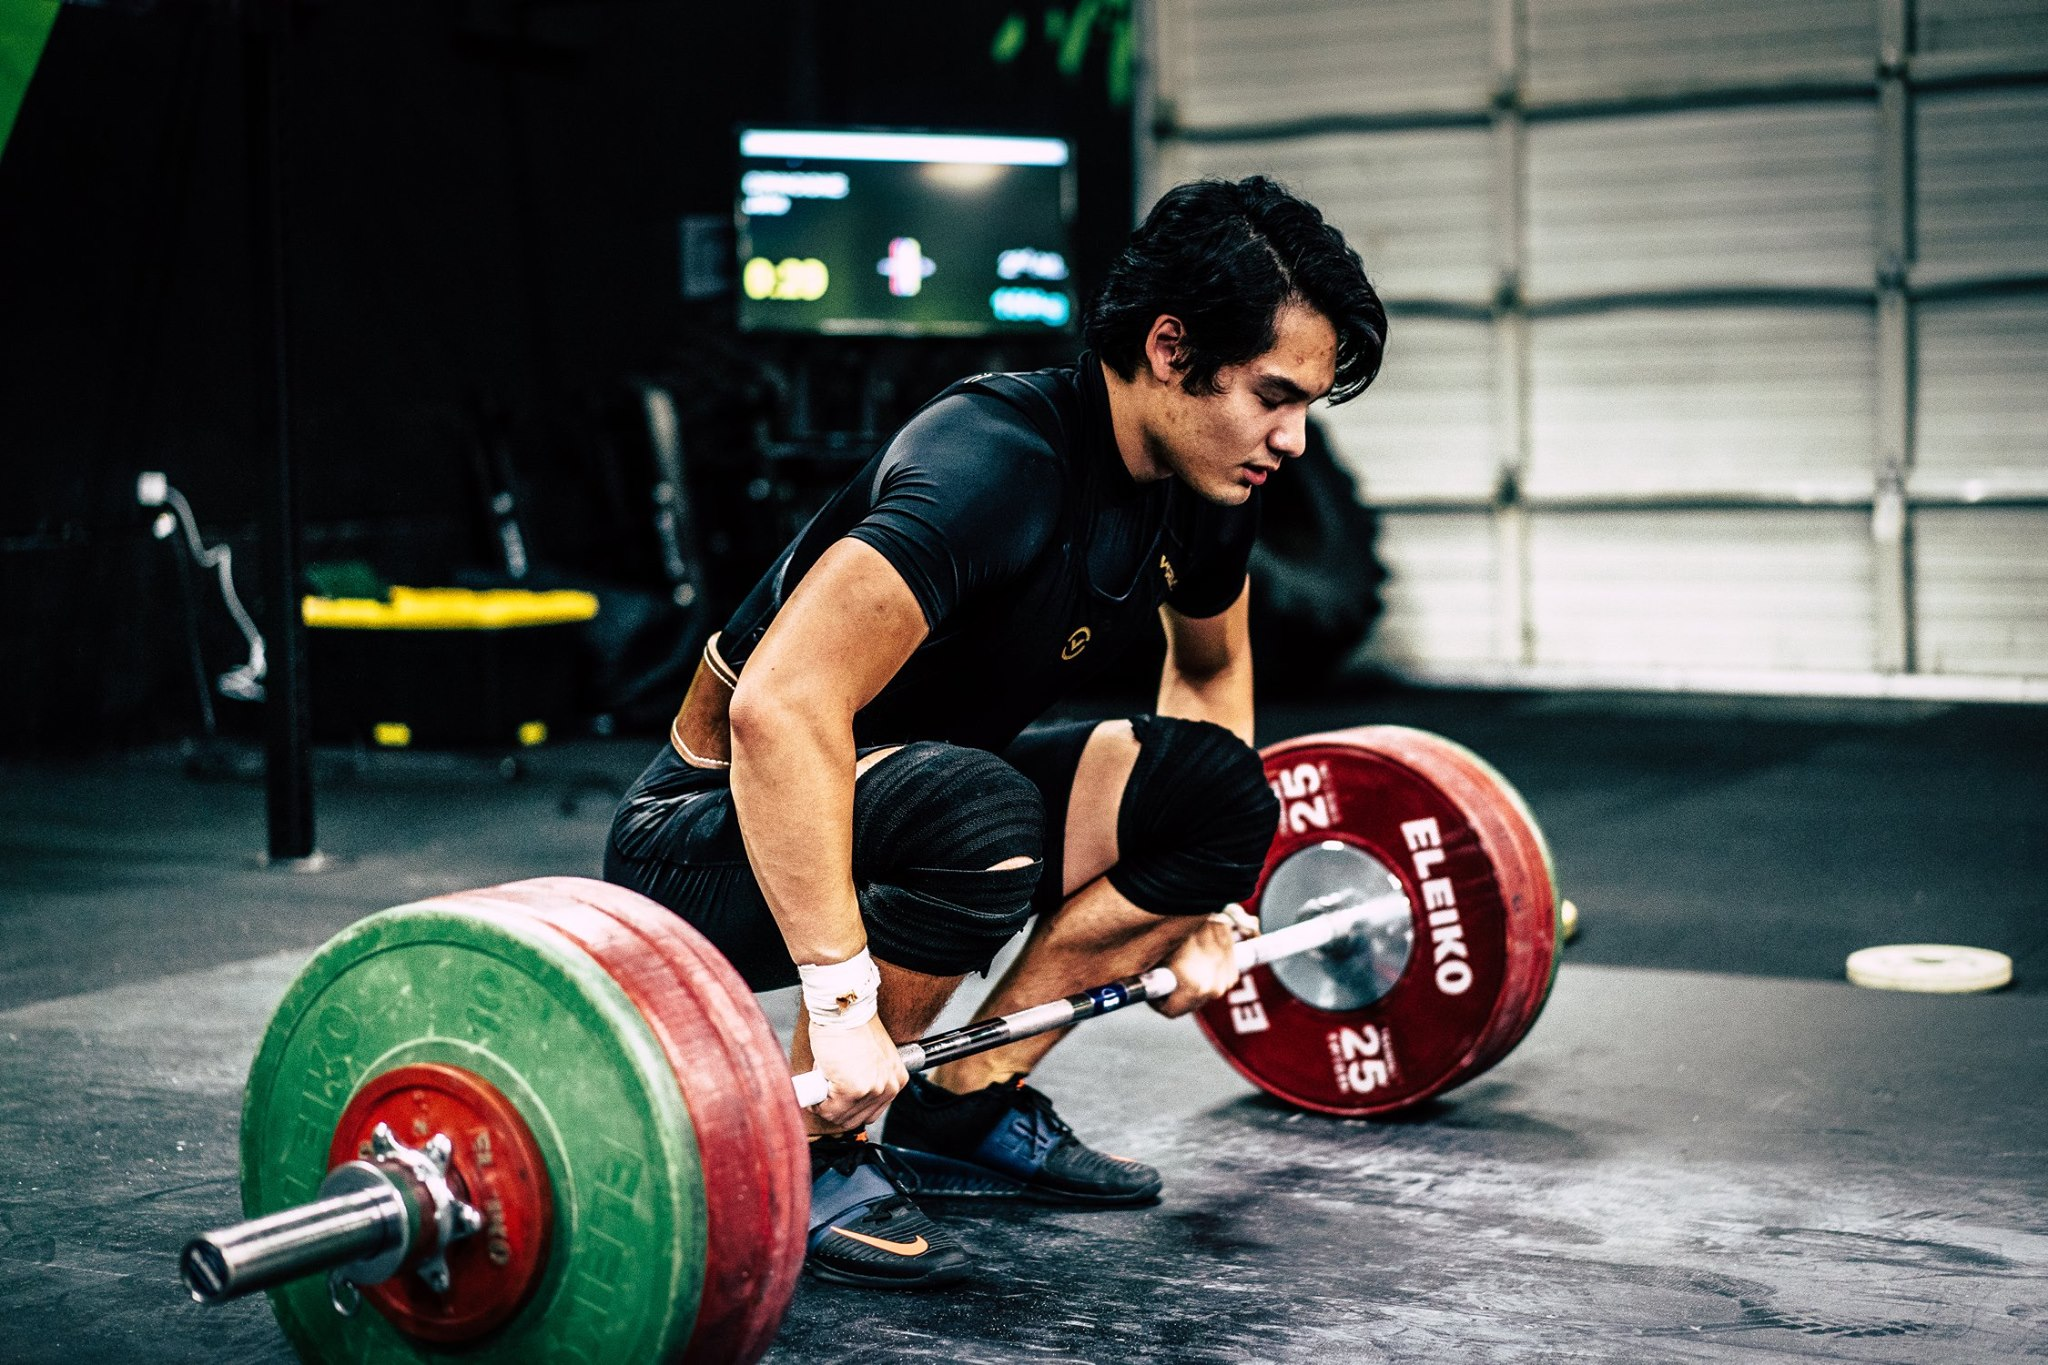 olympic lifting, lifting, training, coaching, olympic weightlifting